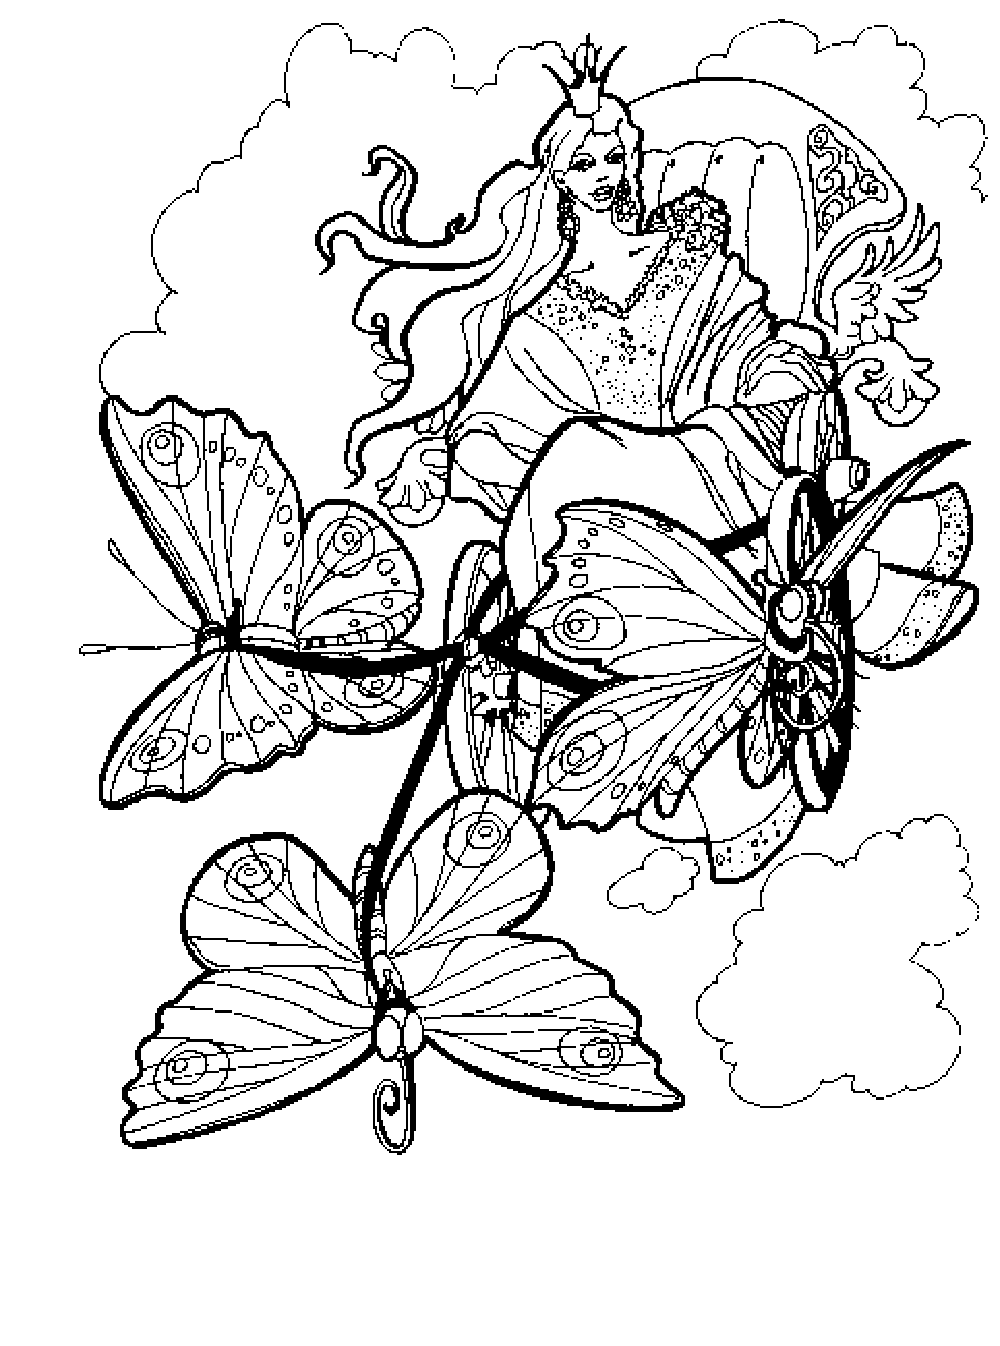 free detailed coloring pages free printable advanced coloring pages coloring home detailed pages free coloring